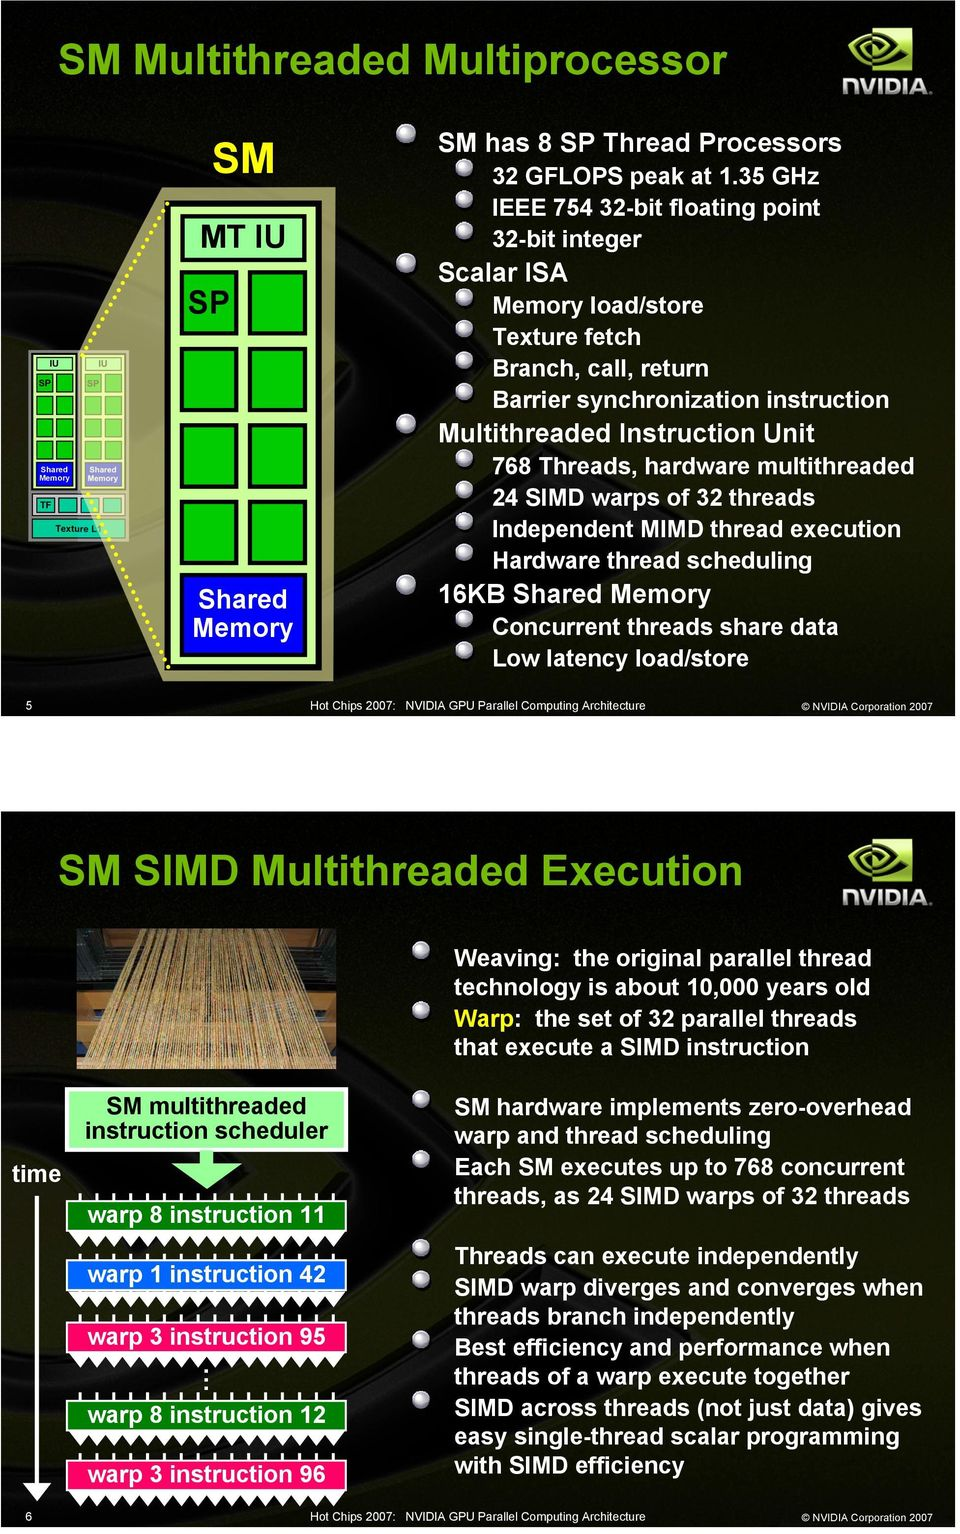 multithreaded 24 SIMD warps of 32 threads Independent MIMD thread execution Hardware thread scheduling 16KB Concurrent threads share data Low latency load/store 5 SM SIMD Multithreaded Execution time